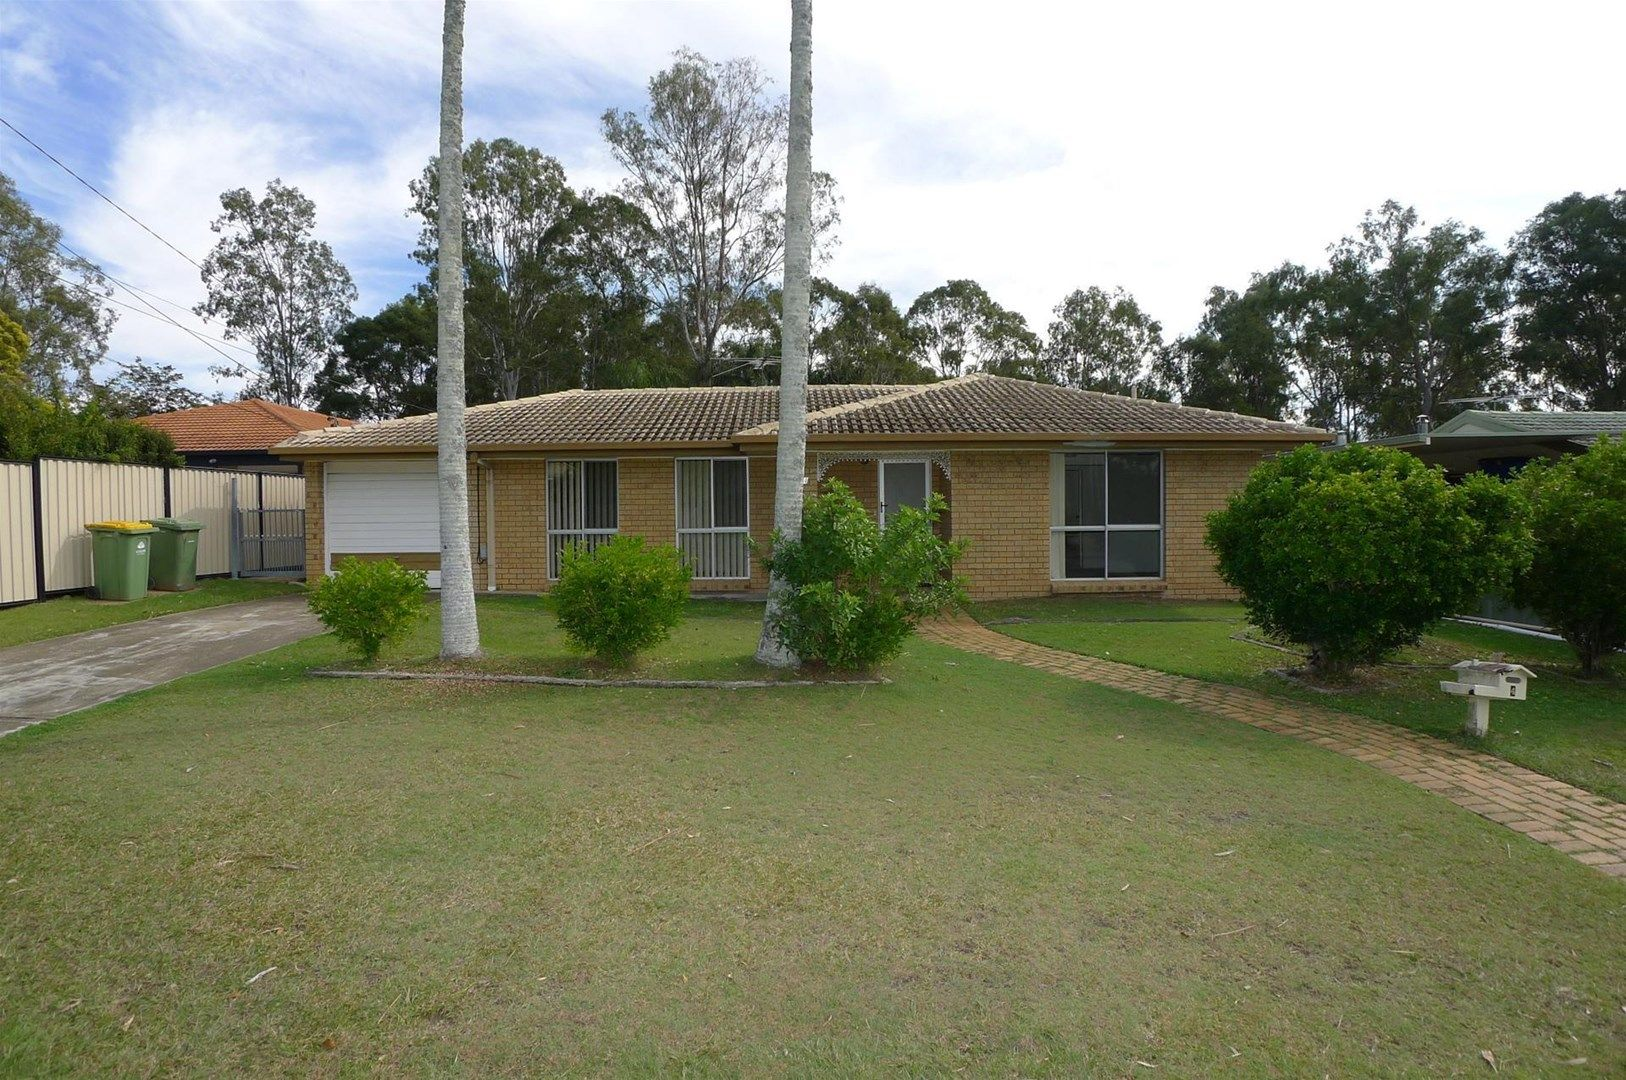 4 Village Drive, Daisy Hill QLD 4127, Image 0